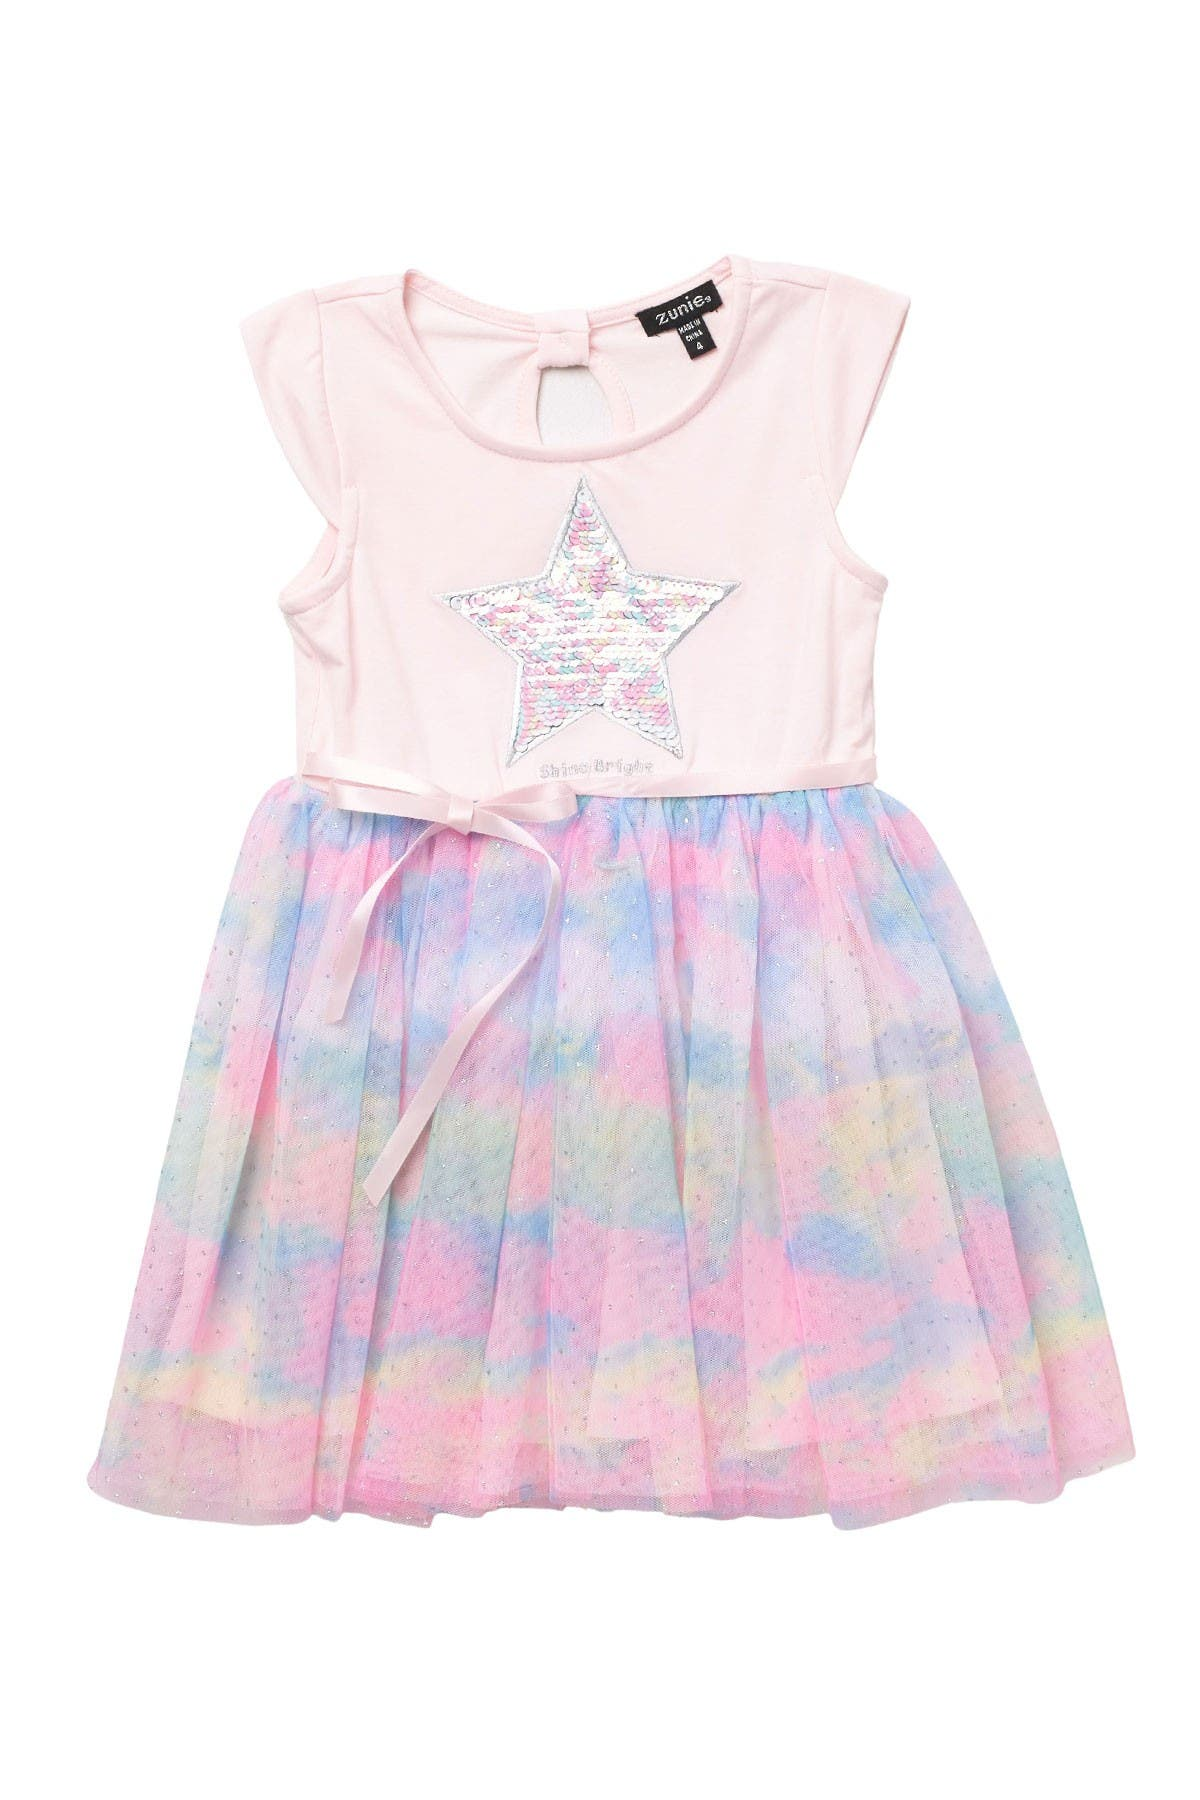 Image of Zunie Cap Sleeve Rainbow Tutu Skirt Dress